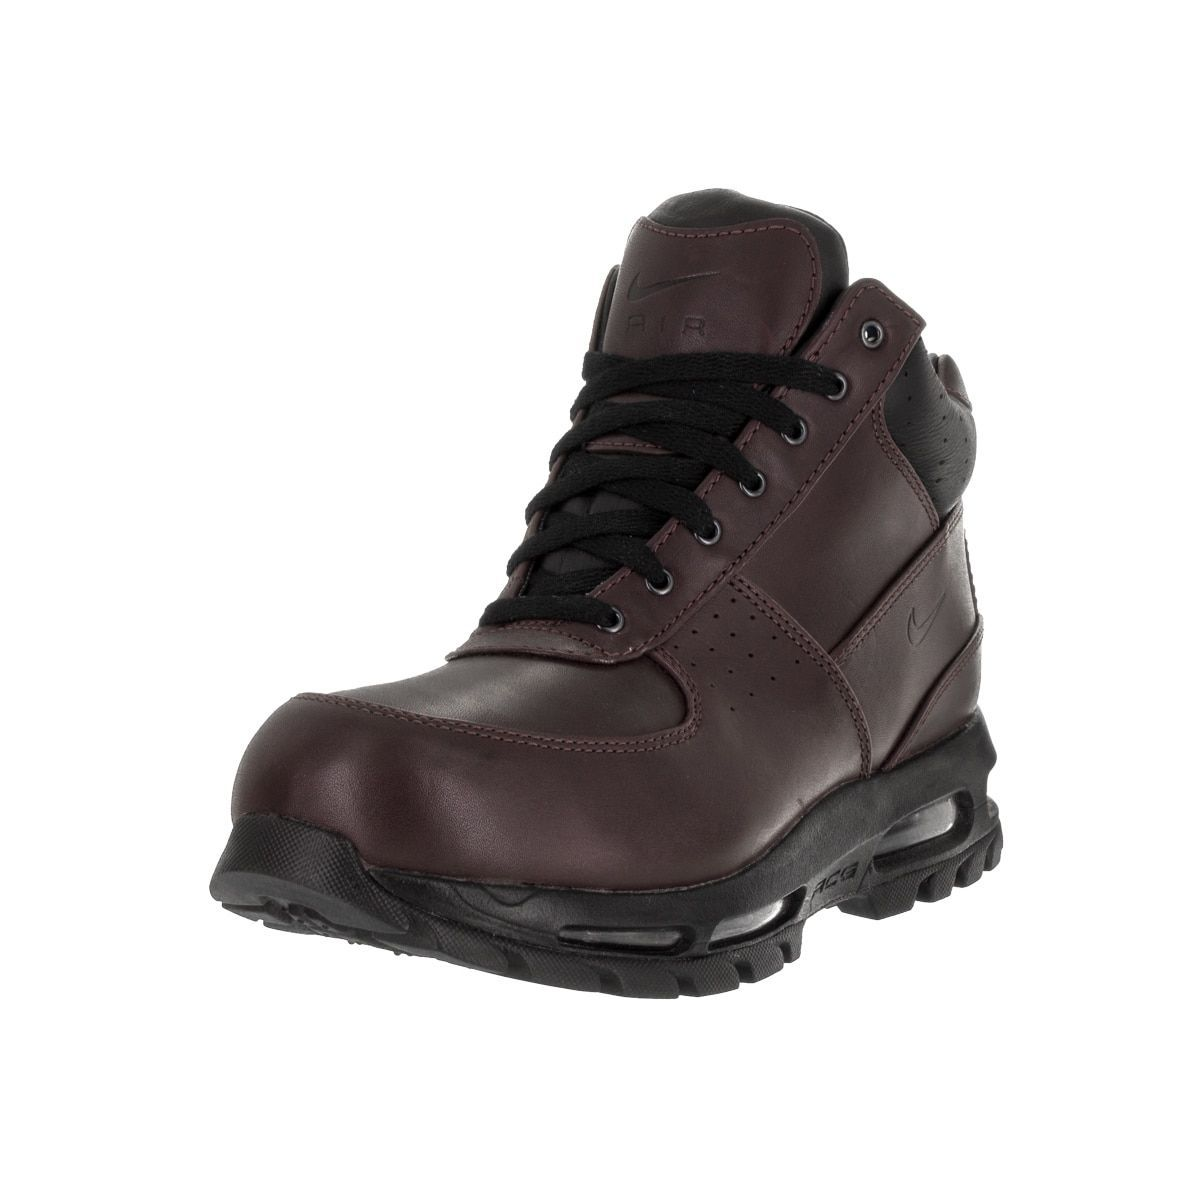 084f3c01c679a Nike Men's Air Max Goadome Deep Burgundy/Black Boot (9), Brown ...